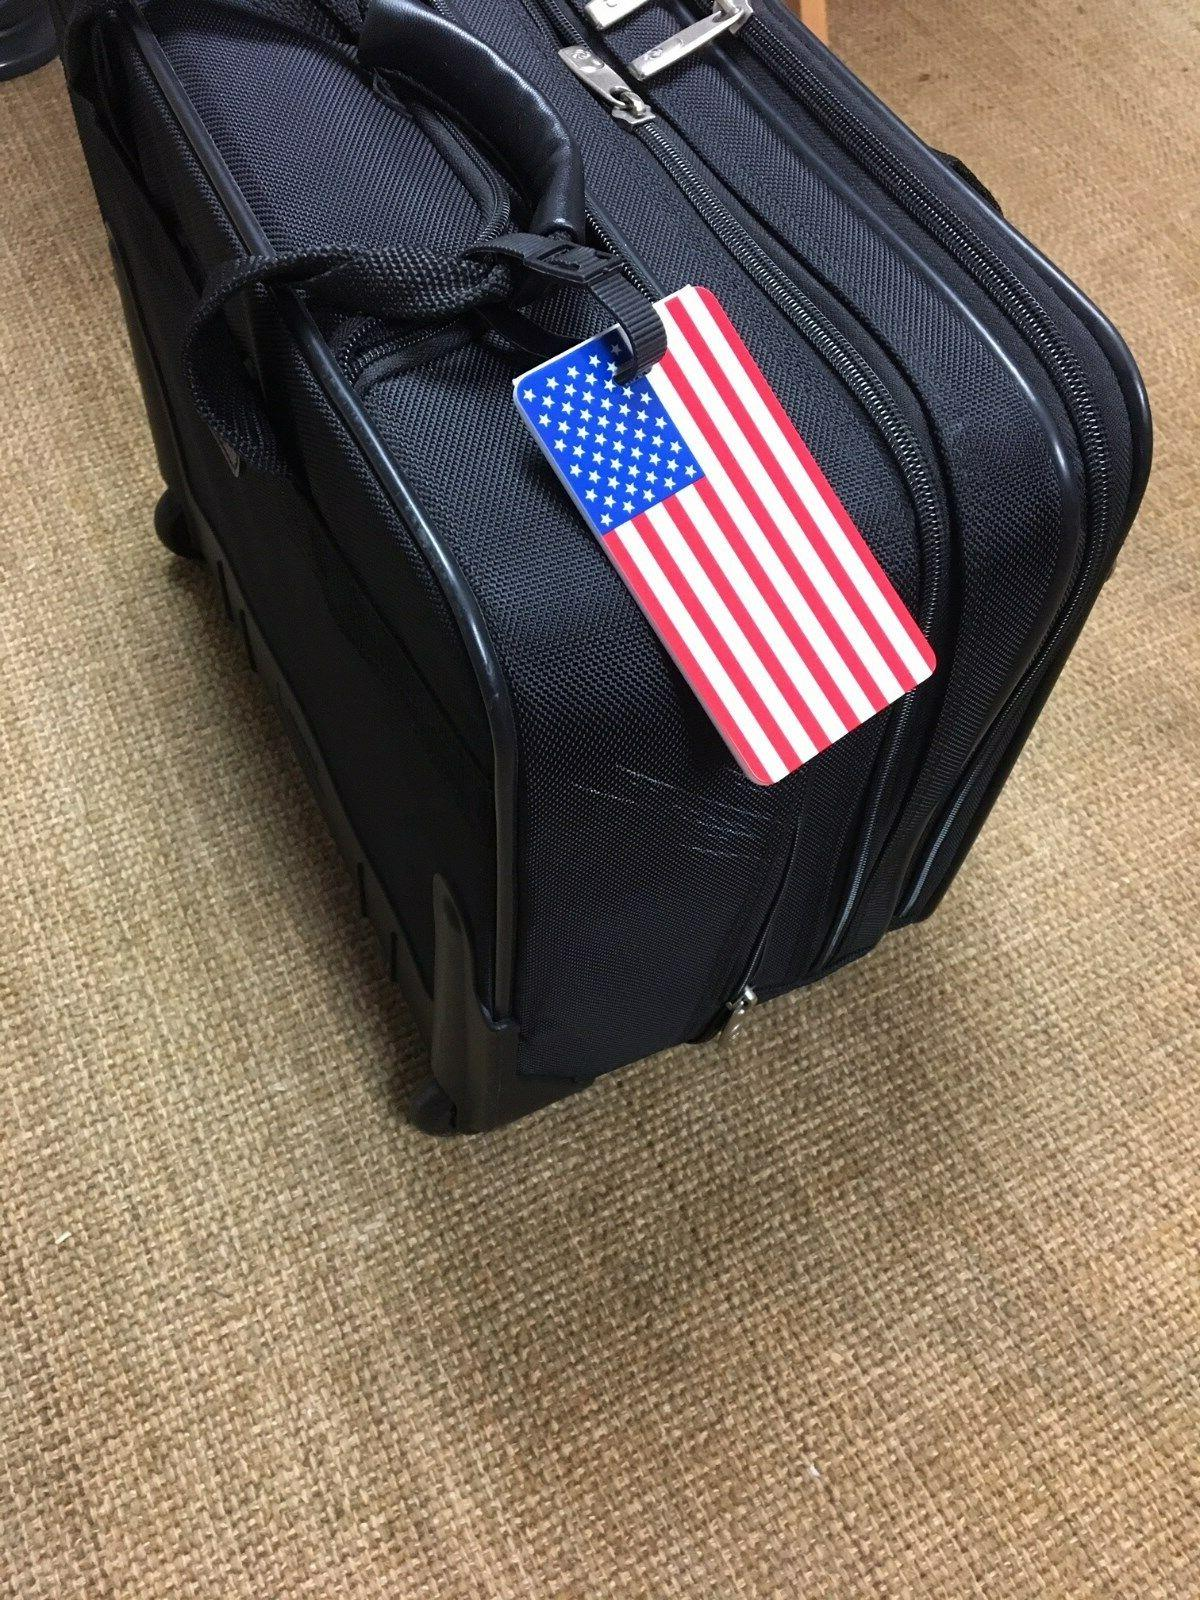 TWO FLAG LUGGAGE TAG with BUS. CARD INSERT